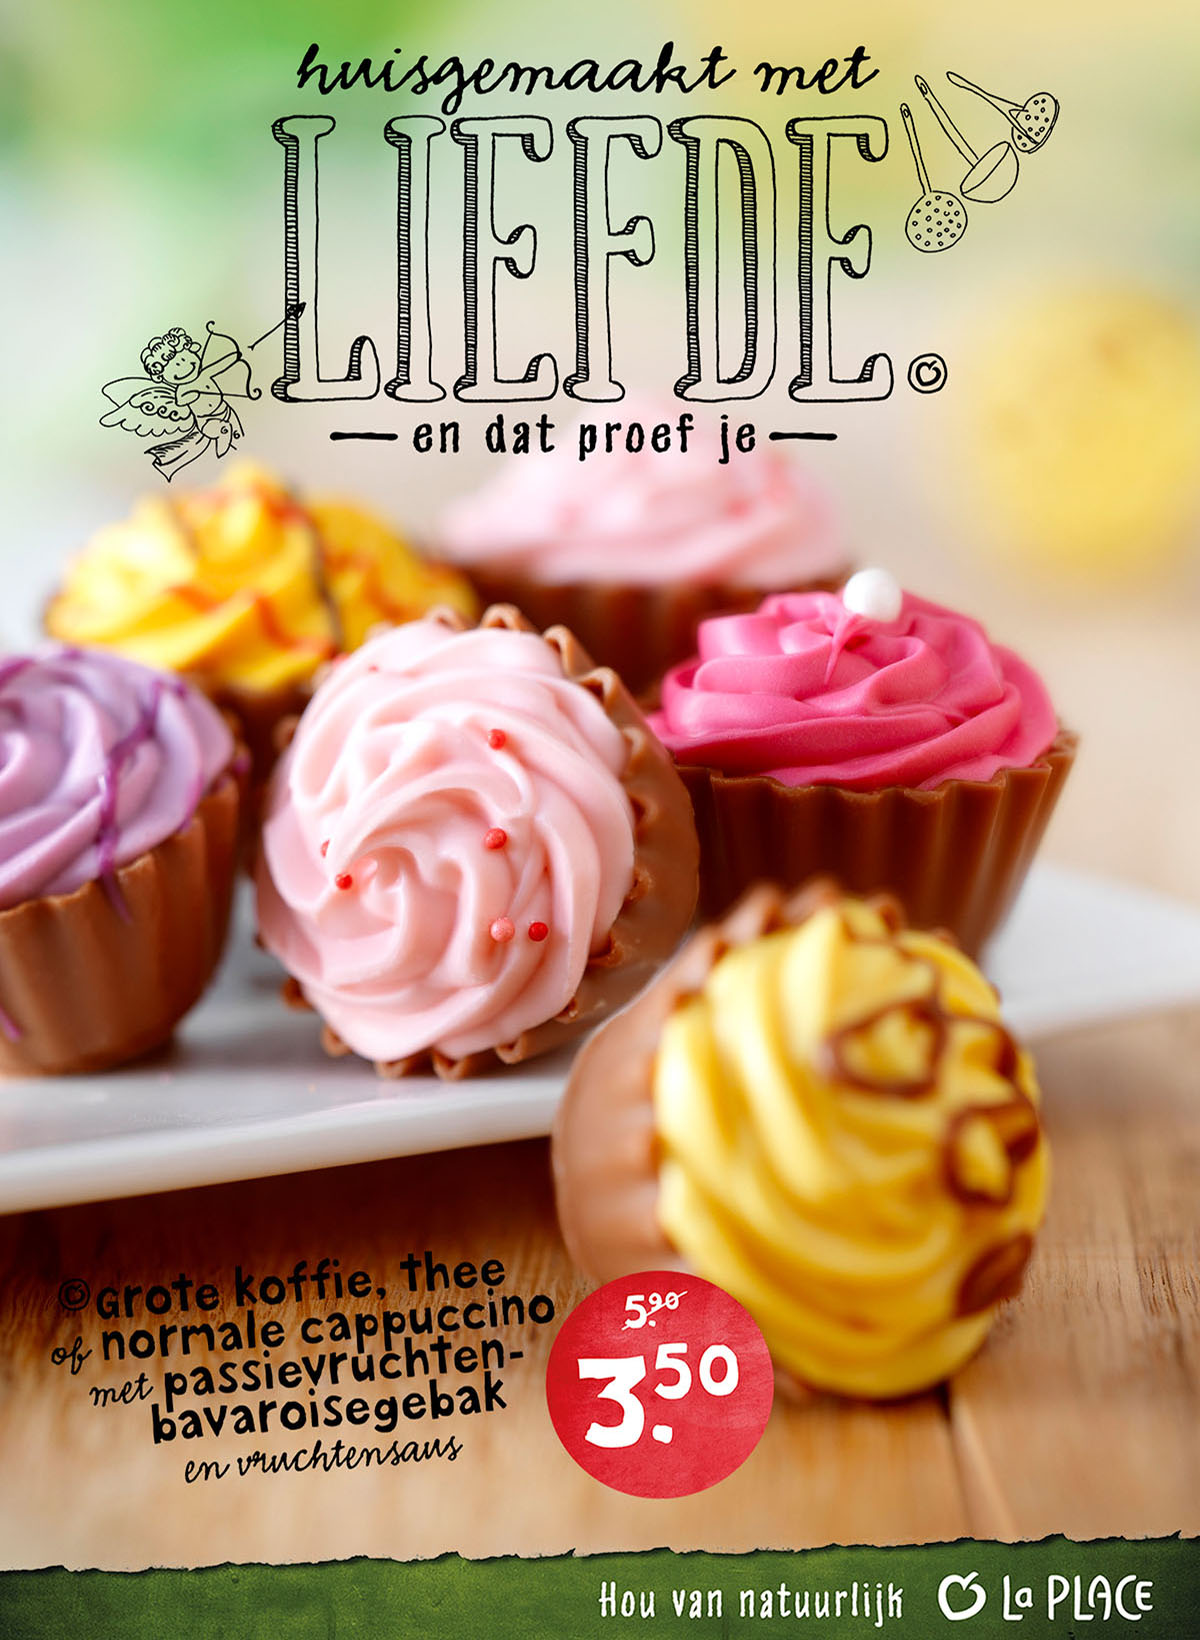 Food photography of La Place's choco cupcakes made by Studio_m Photography Amsterdam